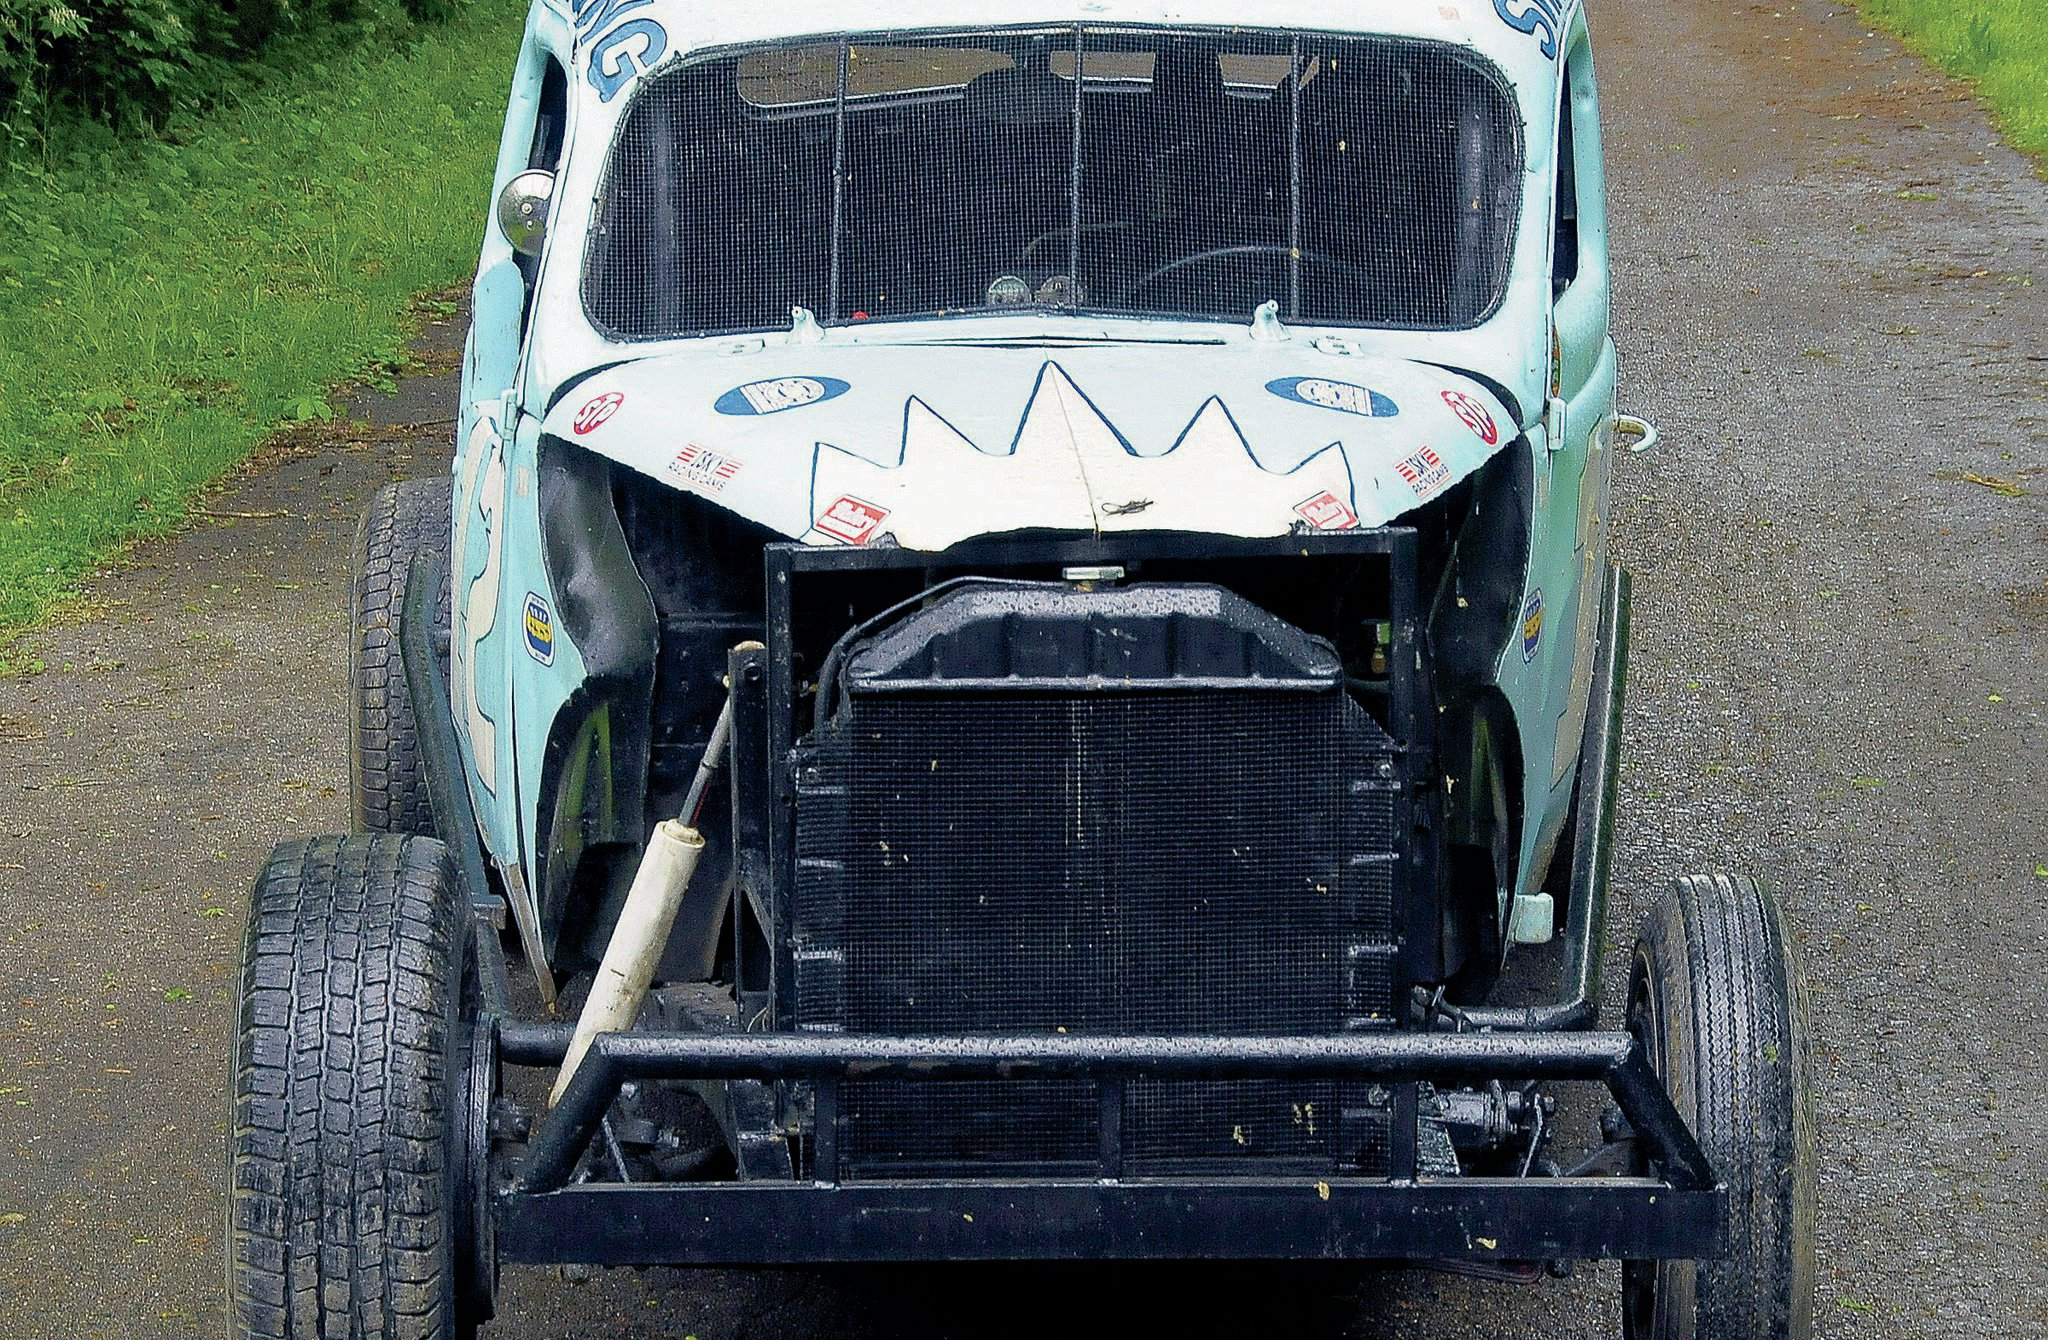 This head-on view of the car shows the larger right front tire. It along with the left front are both street tires while that sturdy front bumper was homemade of channel iron pipe, which made it great for pushing people out of the way. The larger right-side hydraulic shock is also visible.